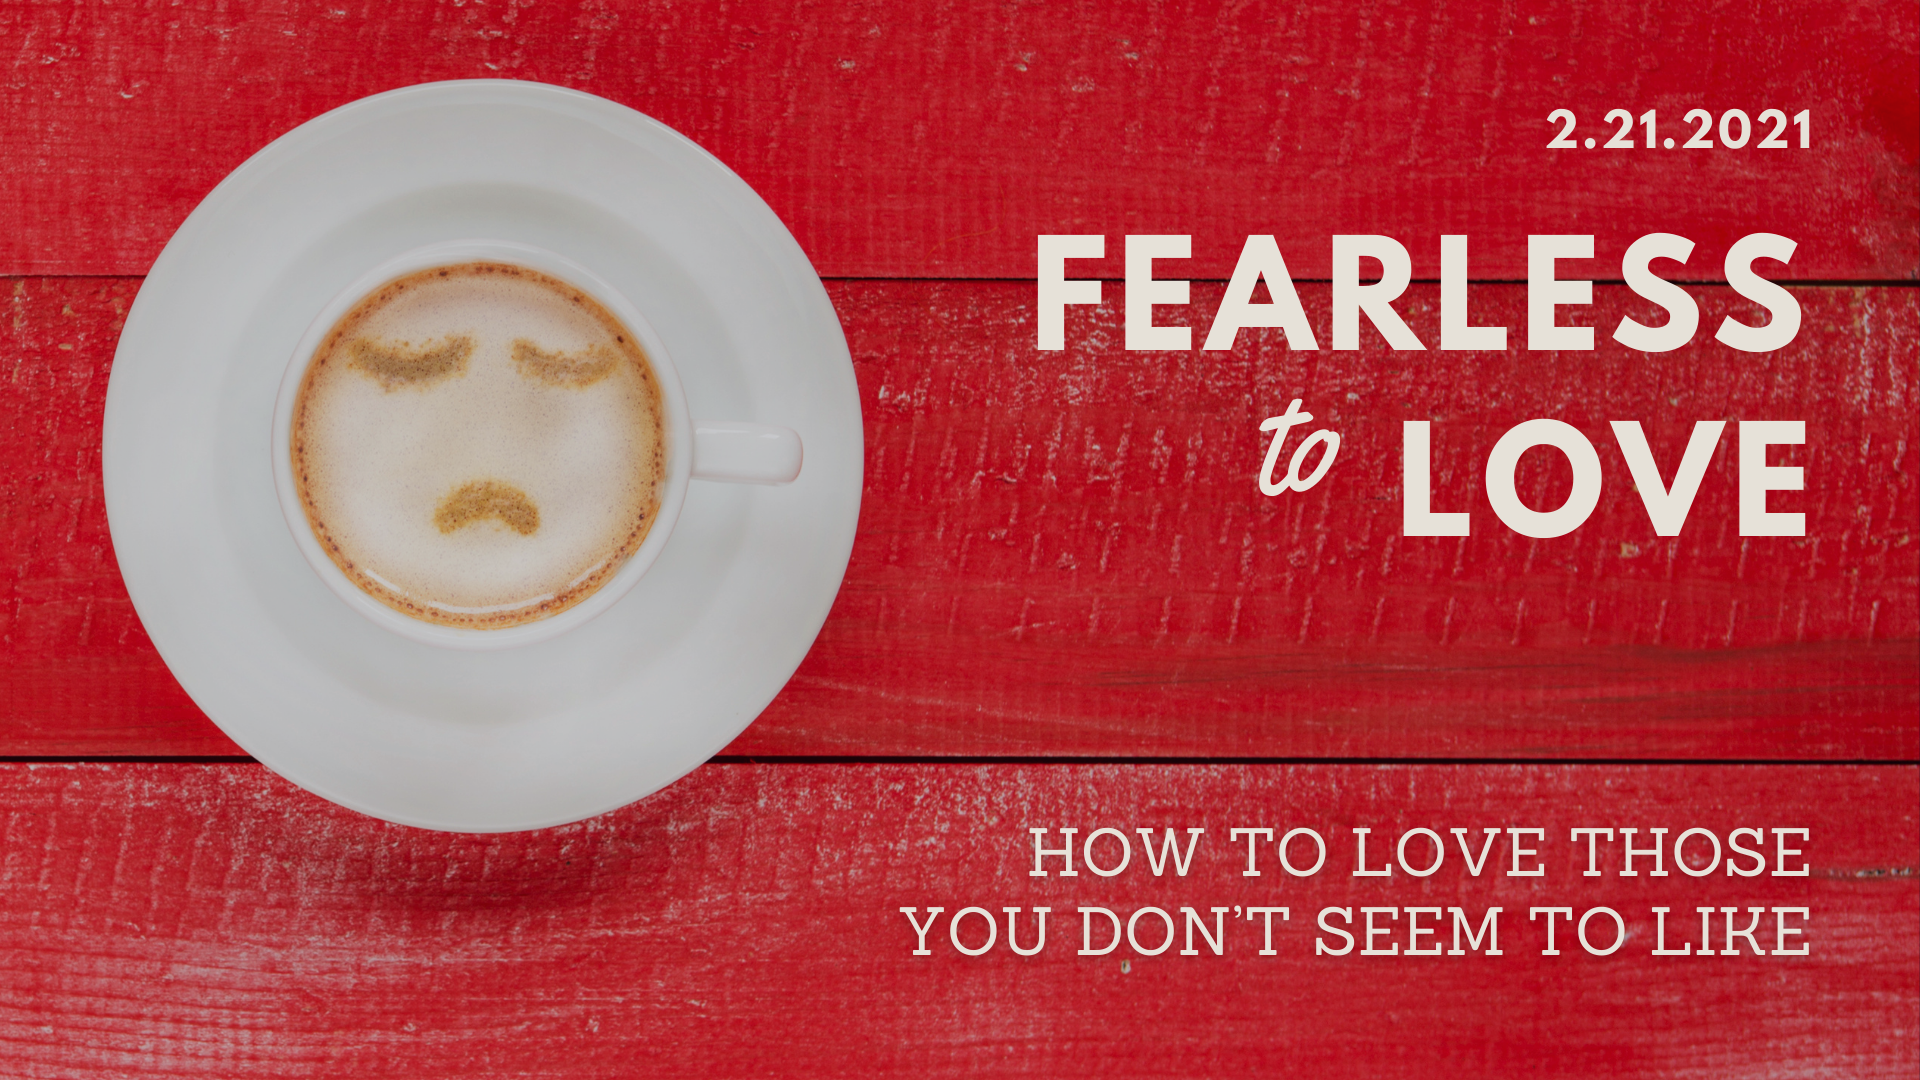 How to love those you don't seem to like